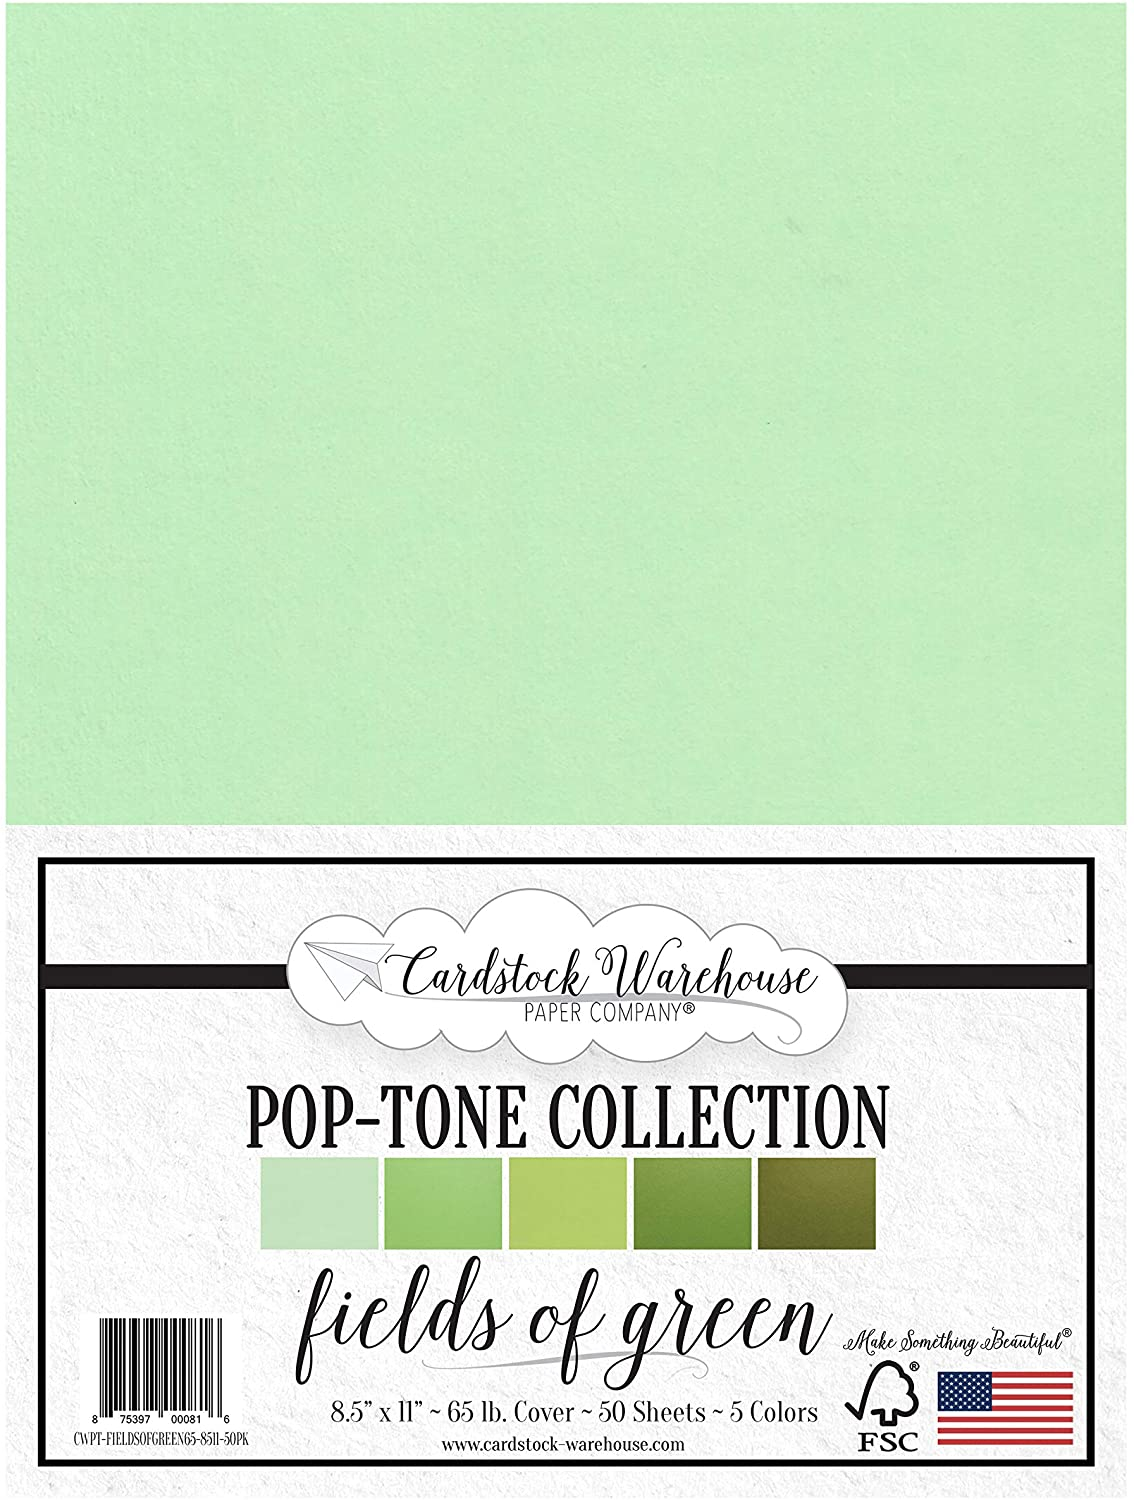 Fields of Green - Multi-Pack Assortment - 8.5 x 11 inch 65 lb Cover Cardstock - 50 Sheets from Cardstock Warehouse